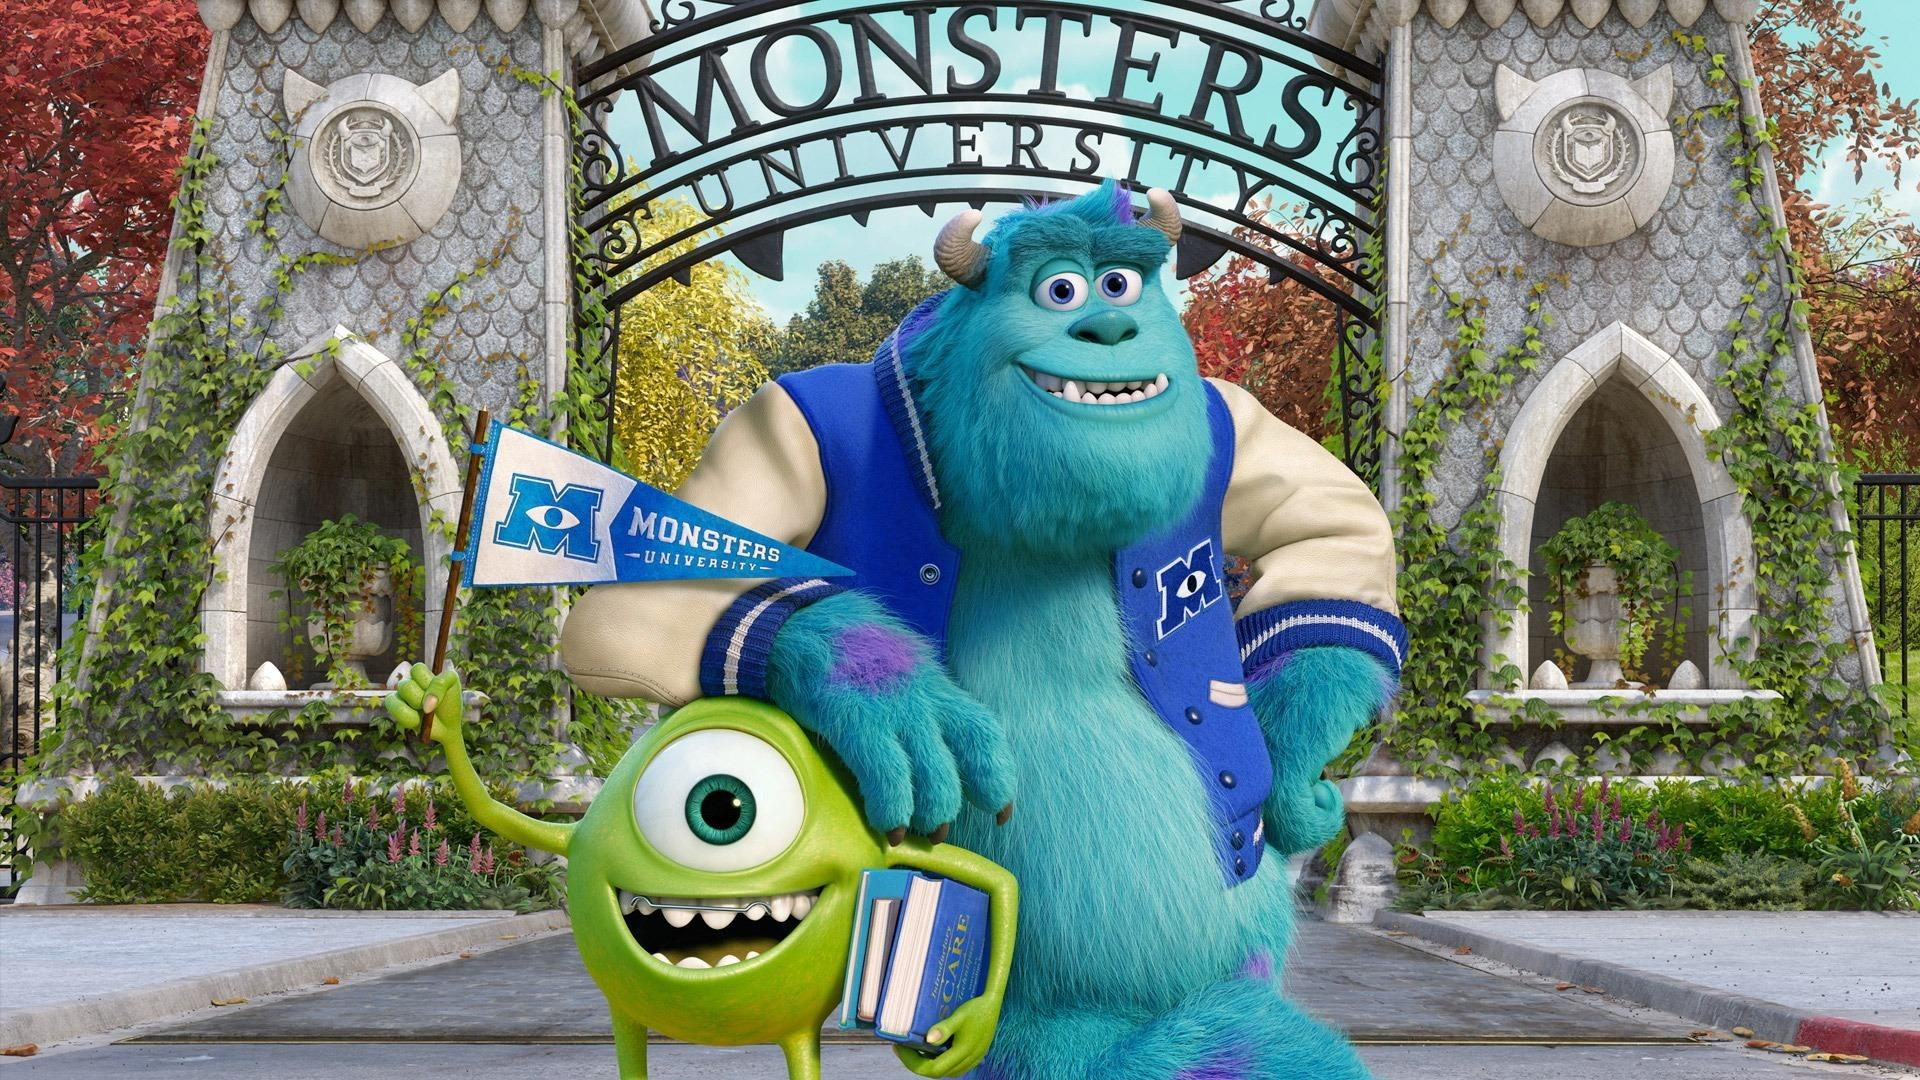 Mike (voiced by Billy Crystal) and Sulley (voiced by John Goodman) go to university in Monsters University (2013)